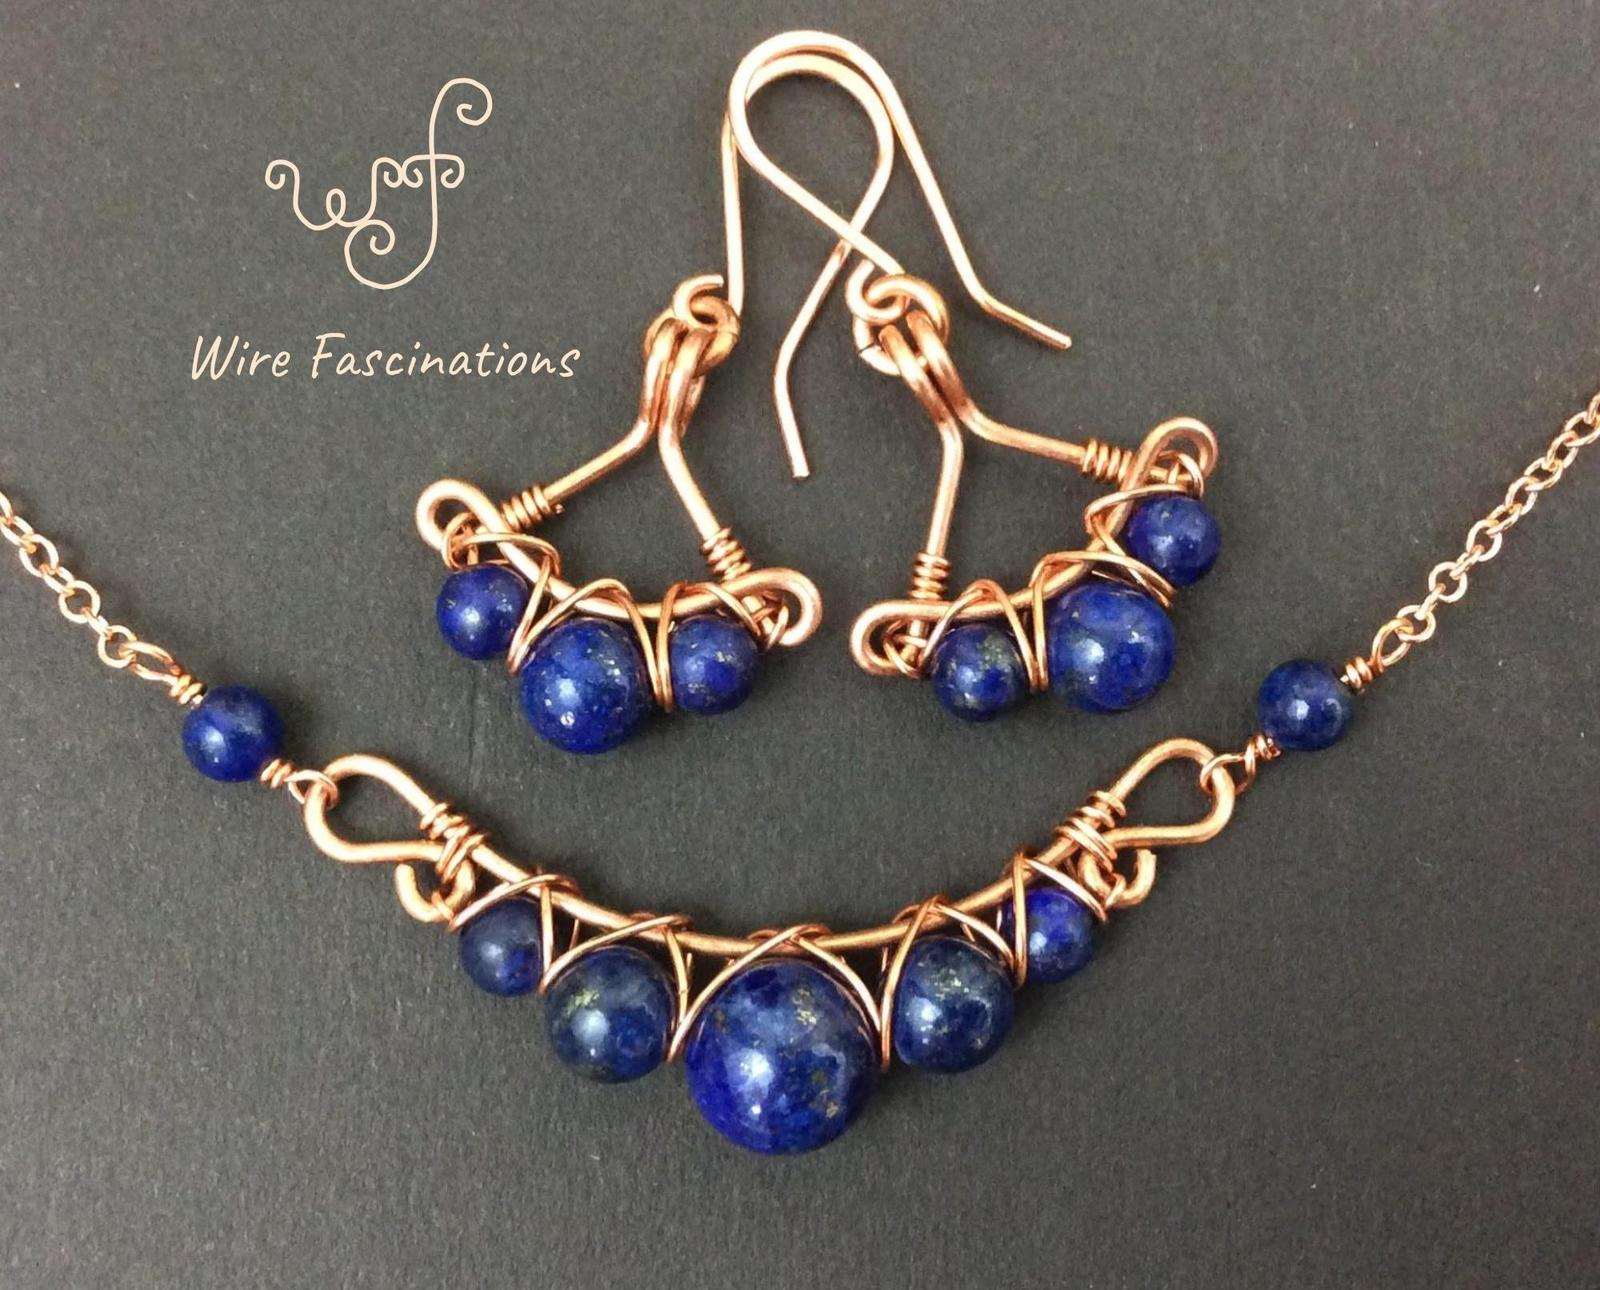 Handmade lapis lazuli necklace: criss cross copper wire wrapped image 12